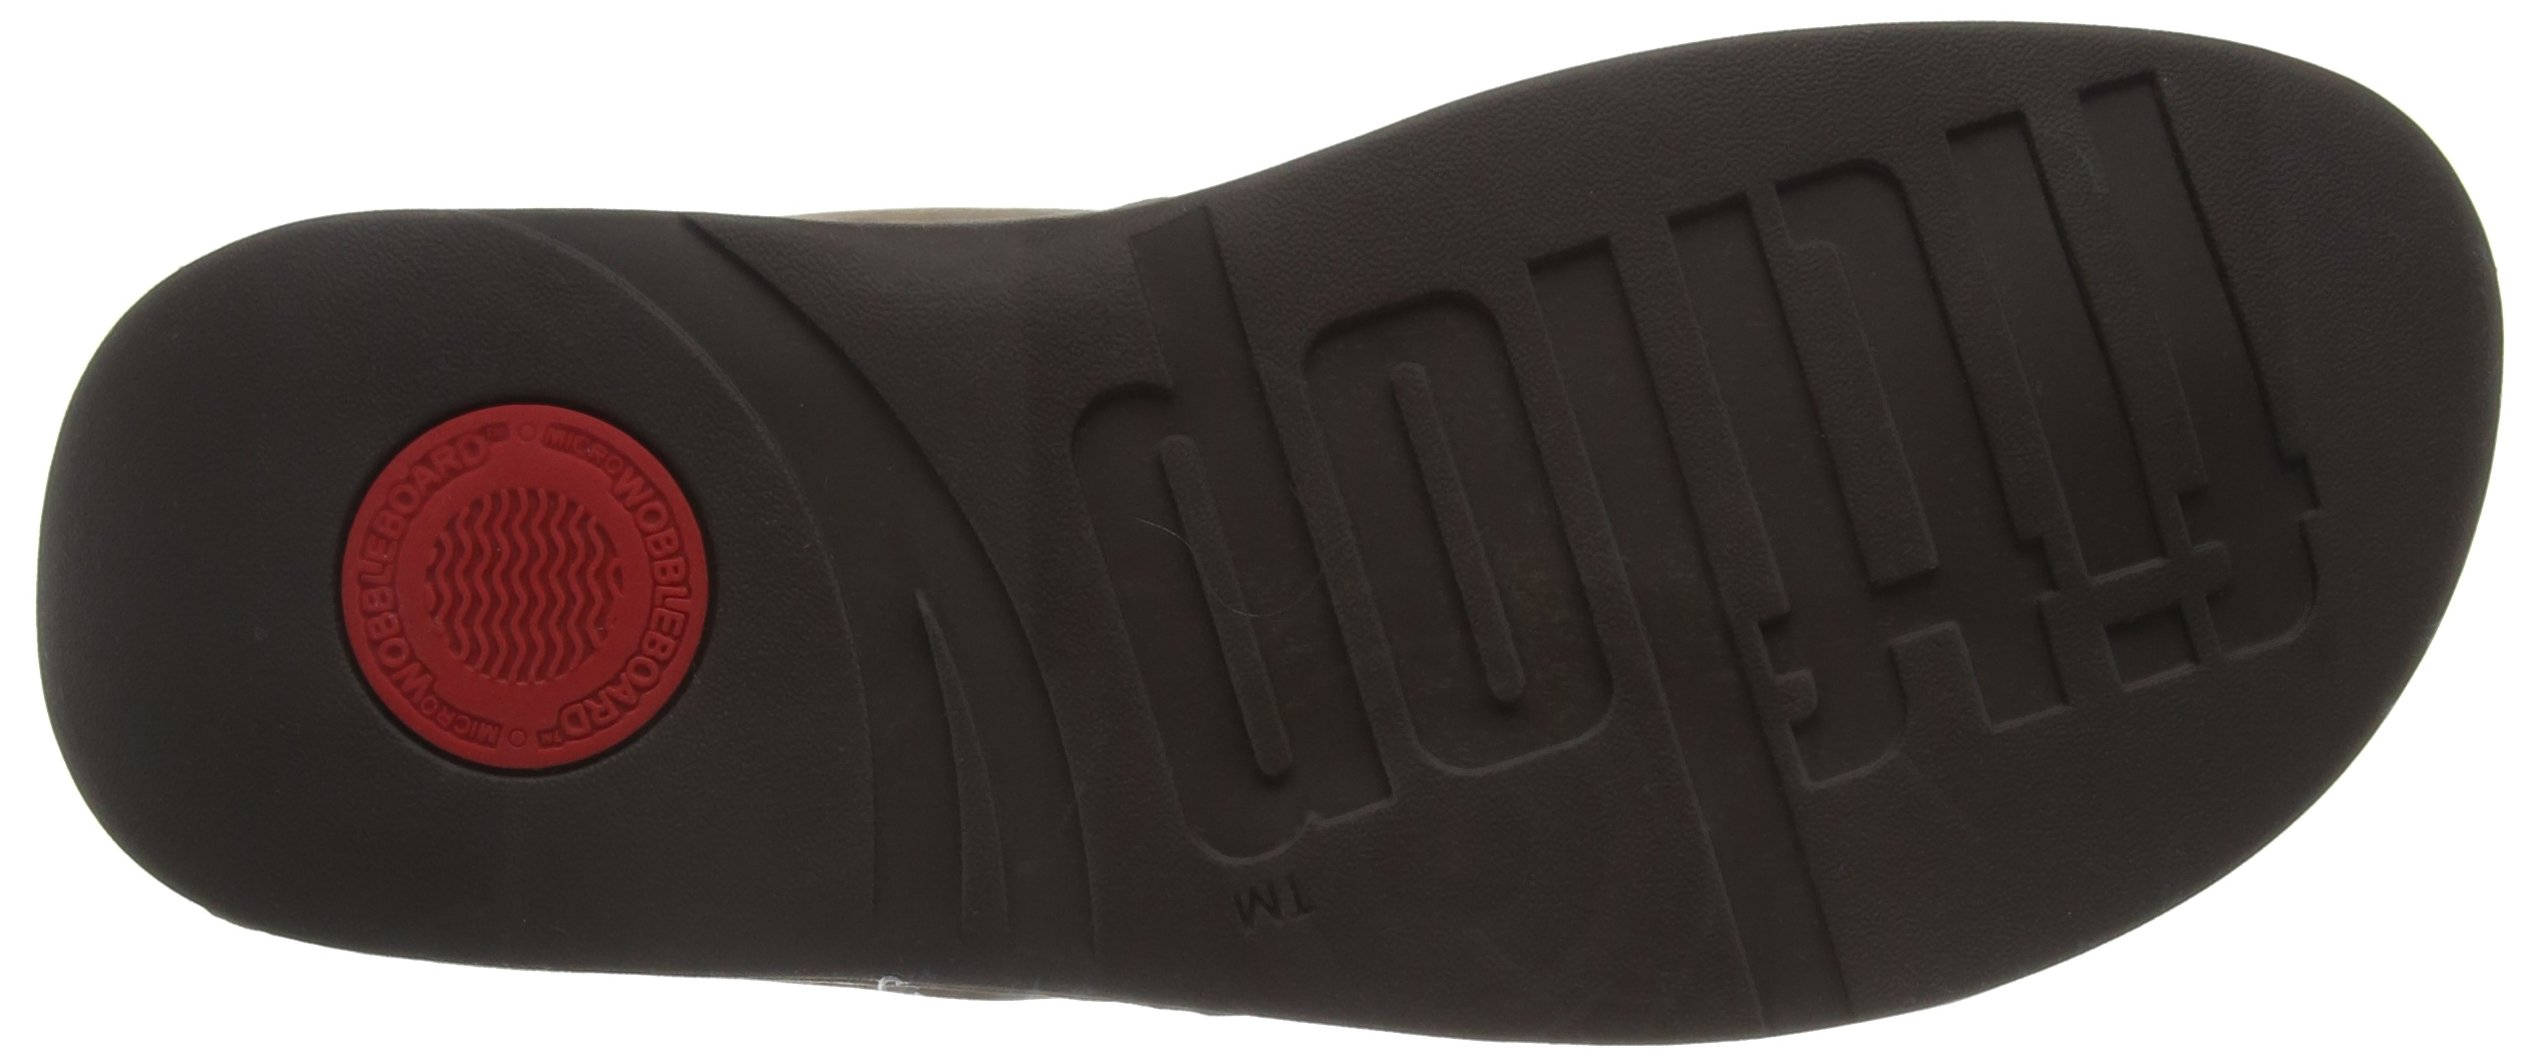 FitFlop Women's Lulu Shimmersuede Flip Flop, Bronze, 9 M US by FitFlop (Image #3)